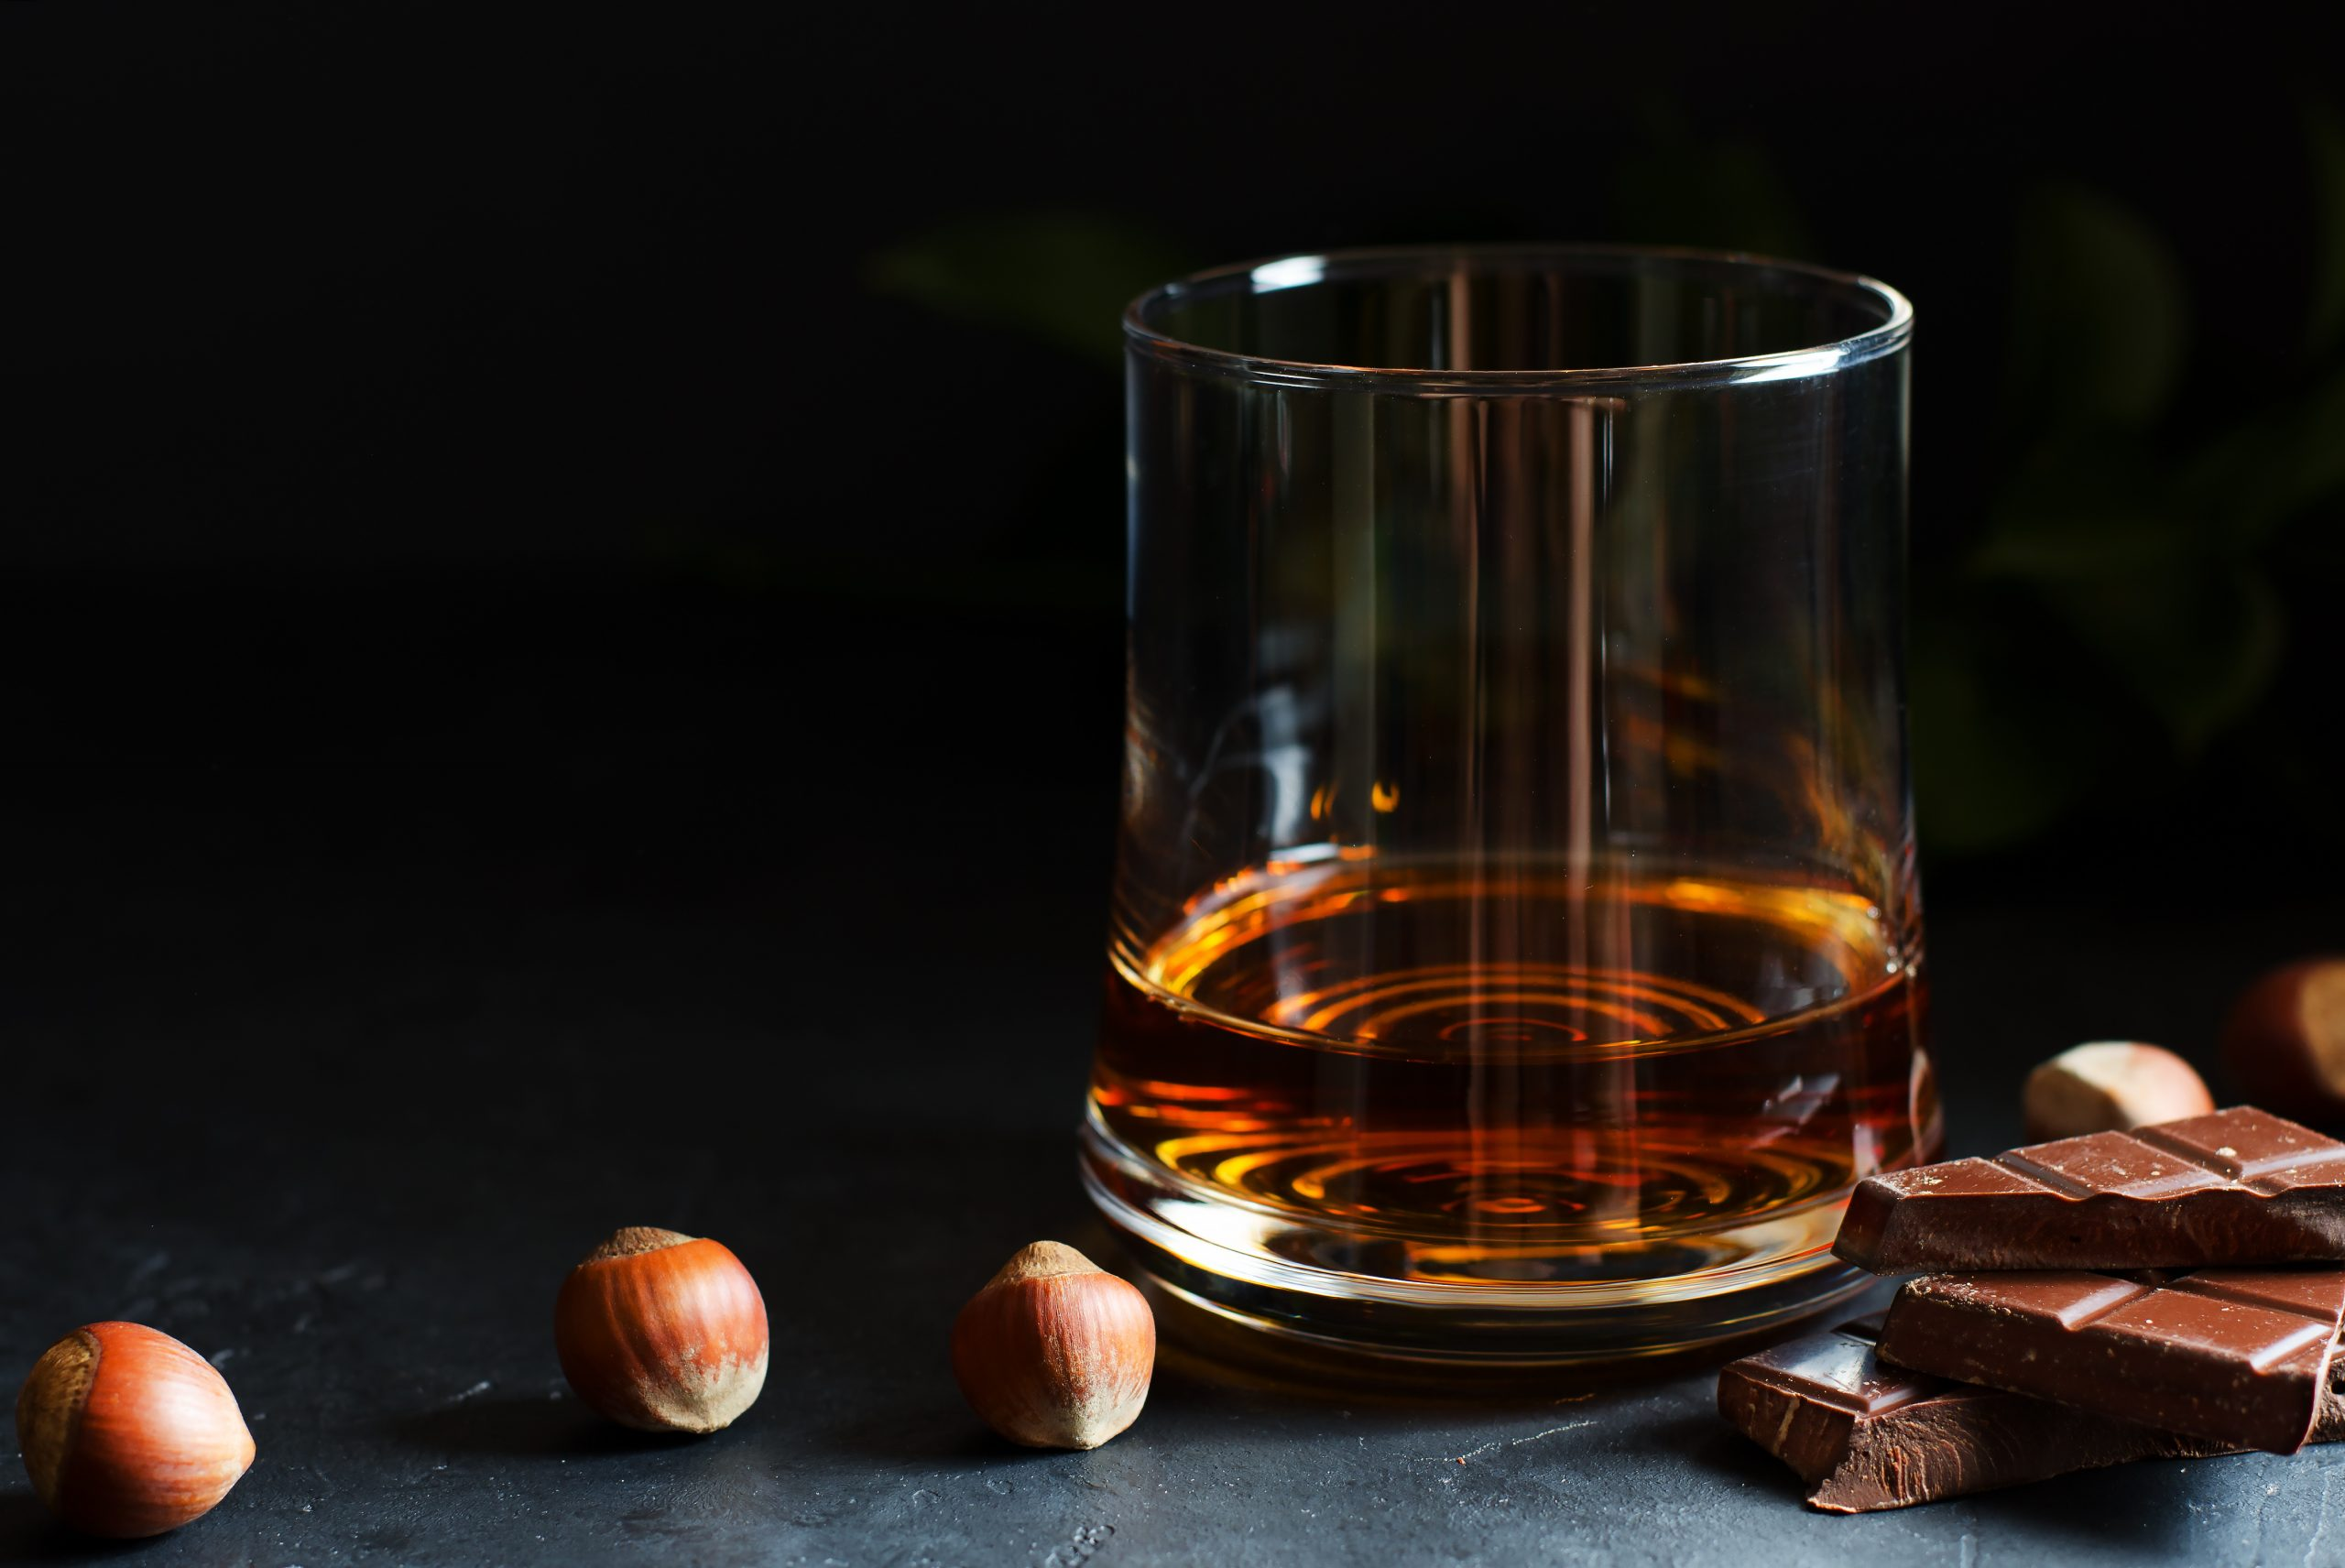 The Best Desserts to Pair with Your David Nicholson Bourbon